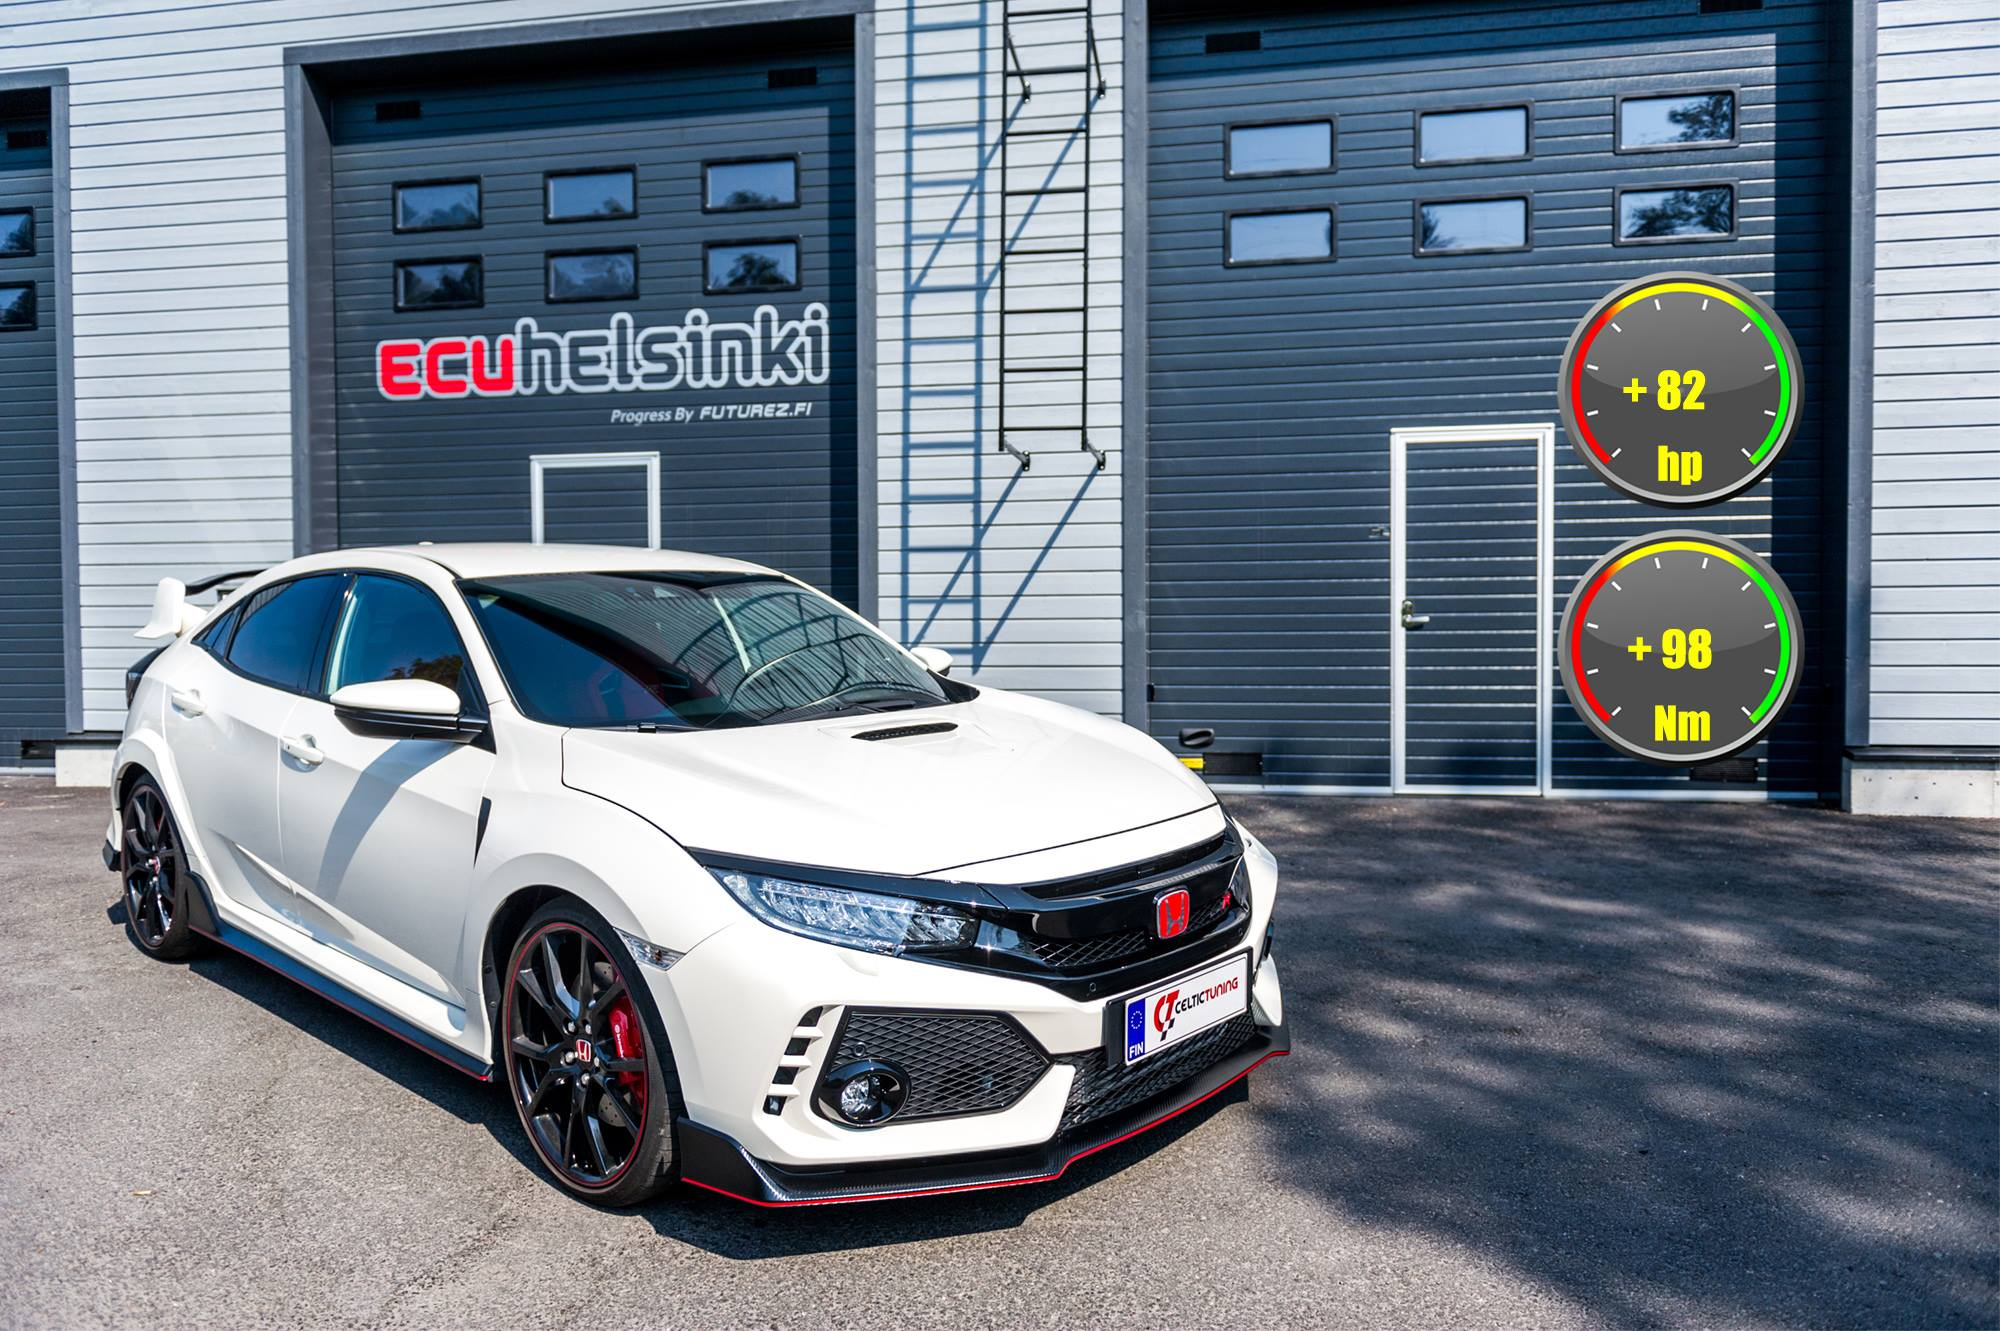 Honda Civic Type-R lastutus celtic